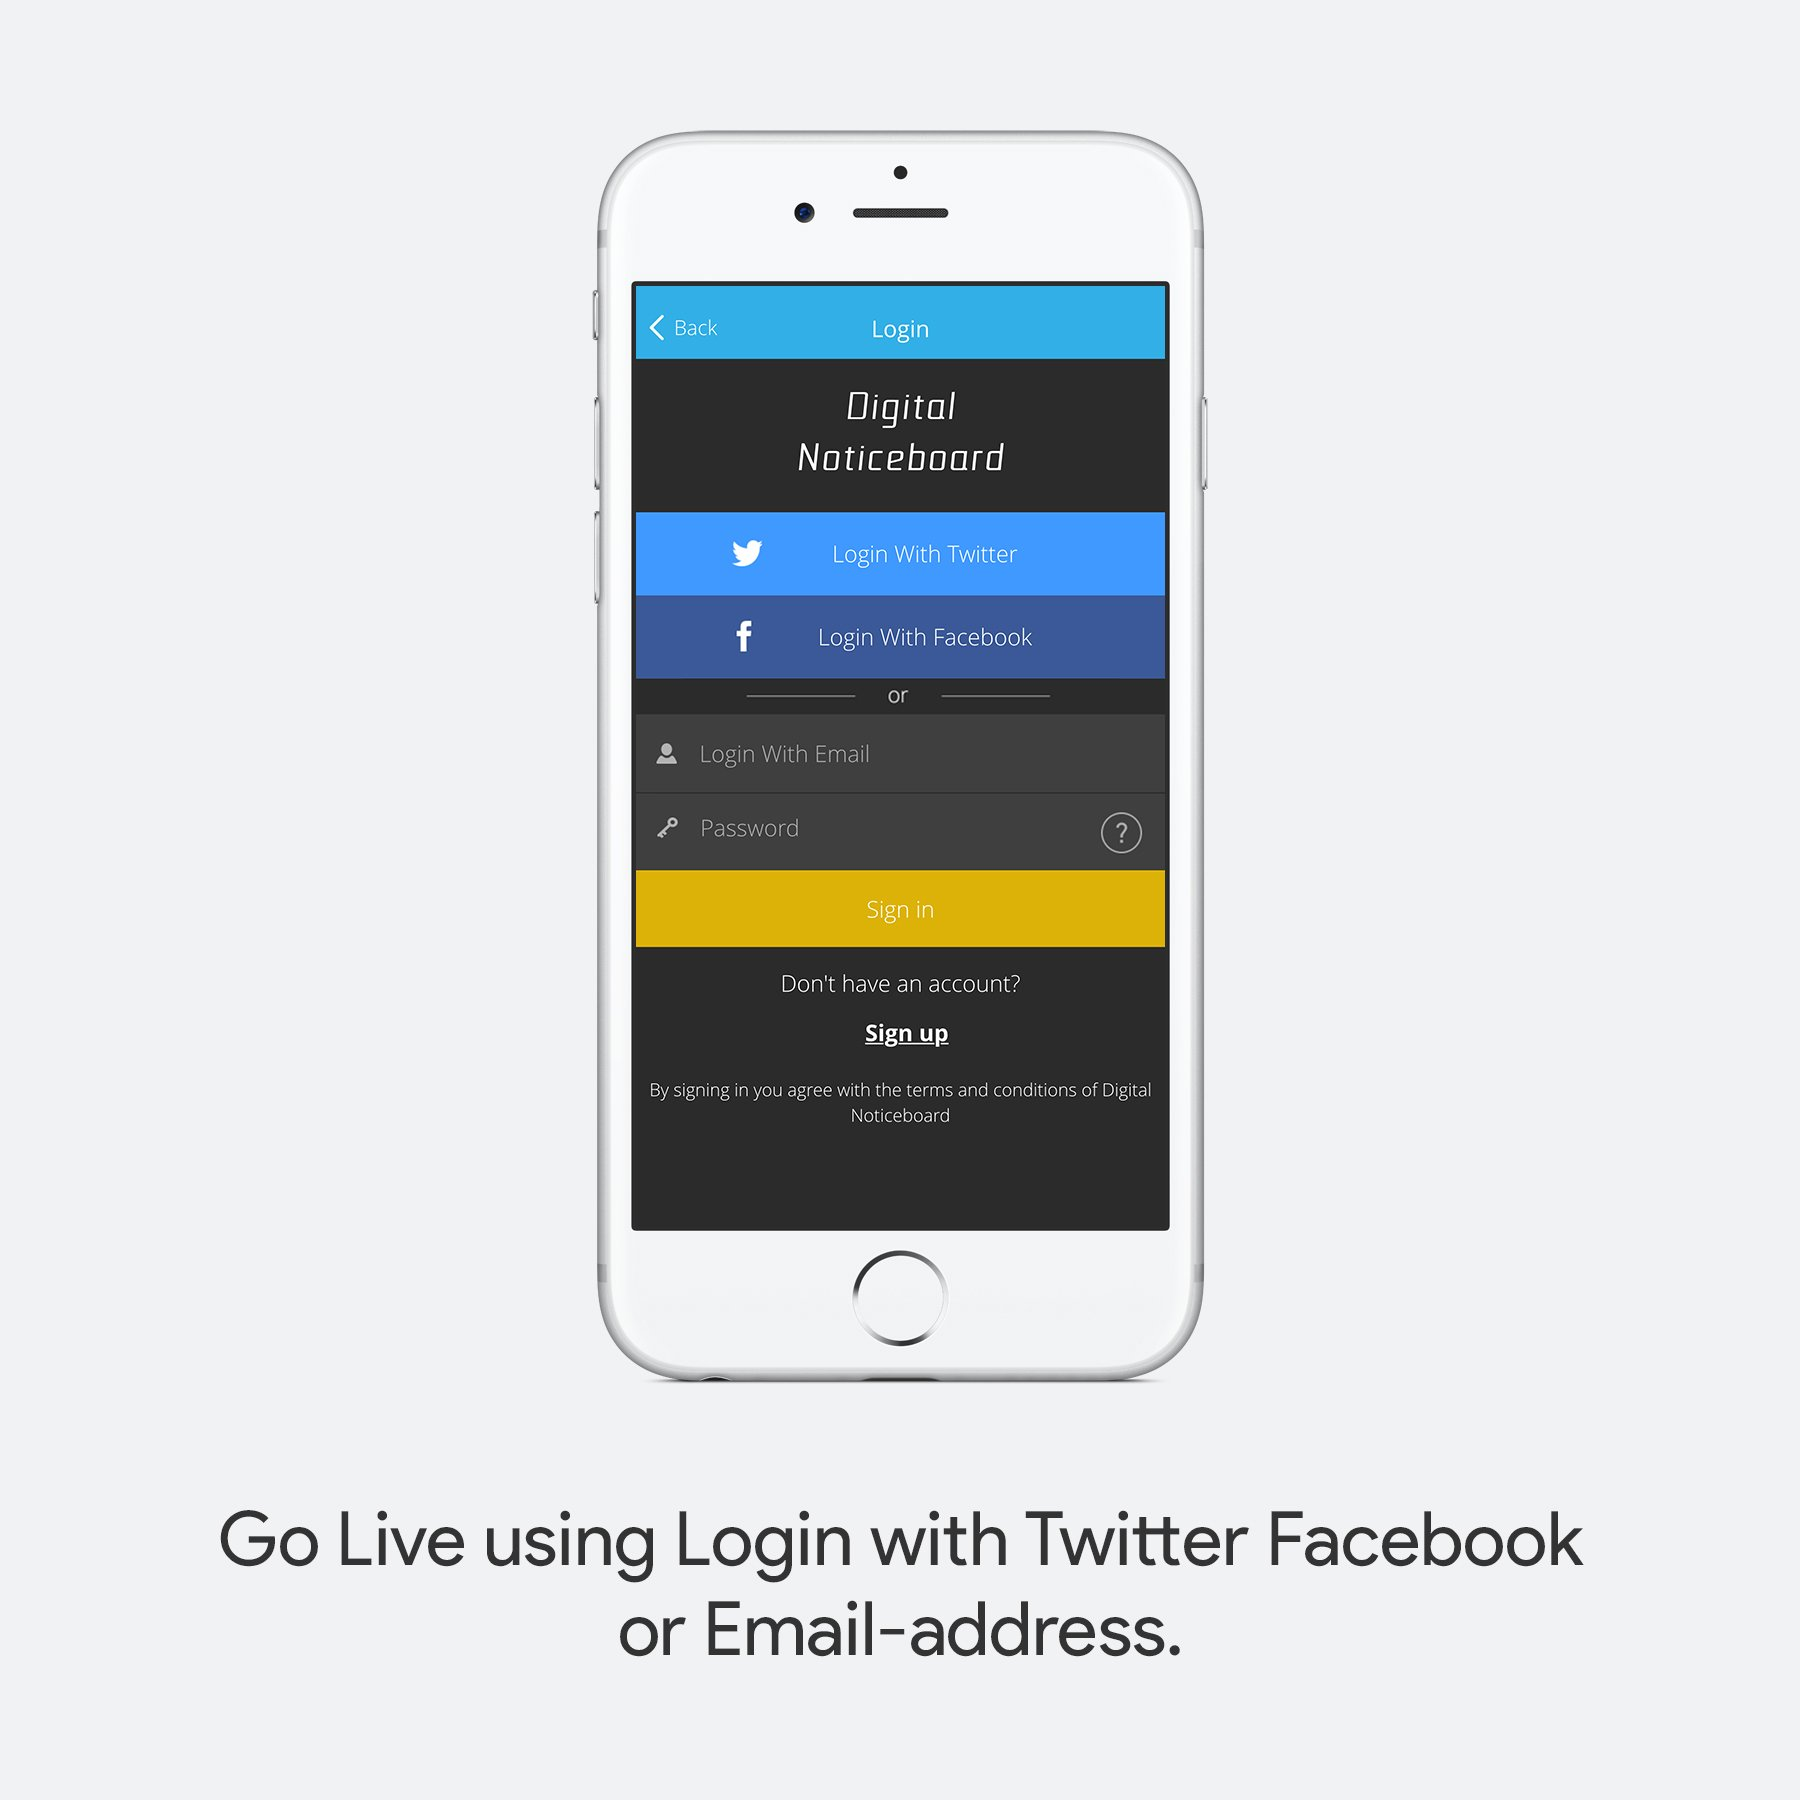 Go Live using login with Twitter Facebook or Email Address.